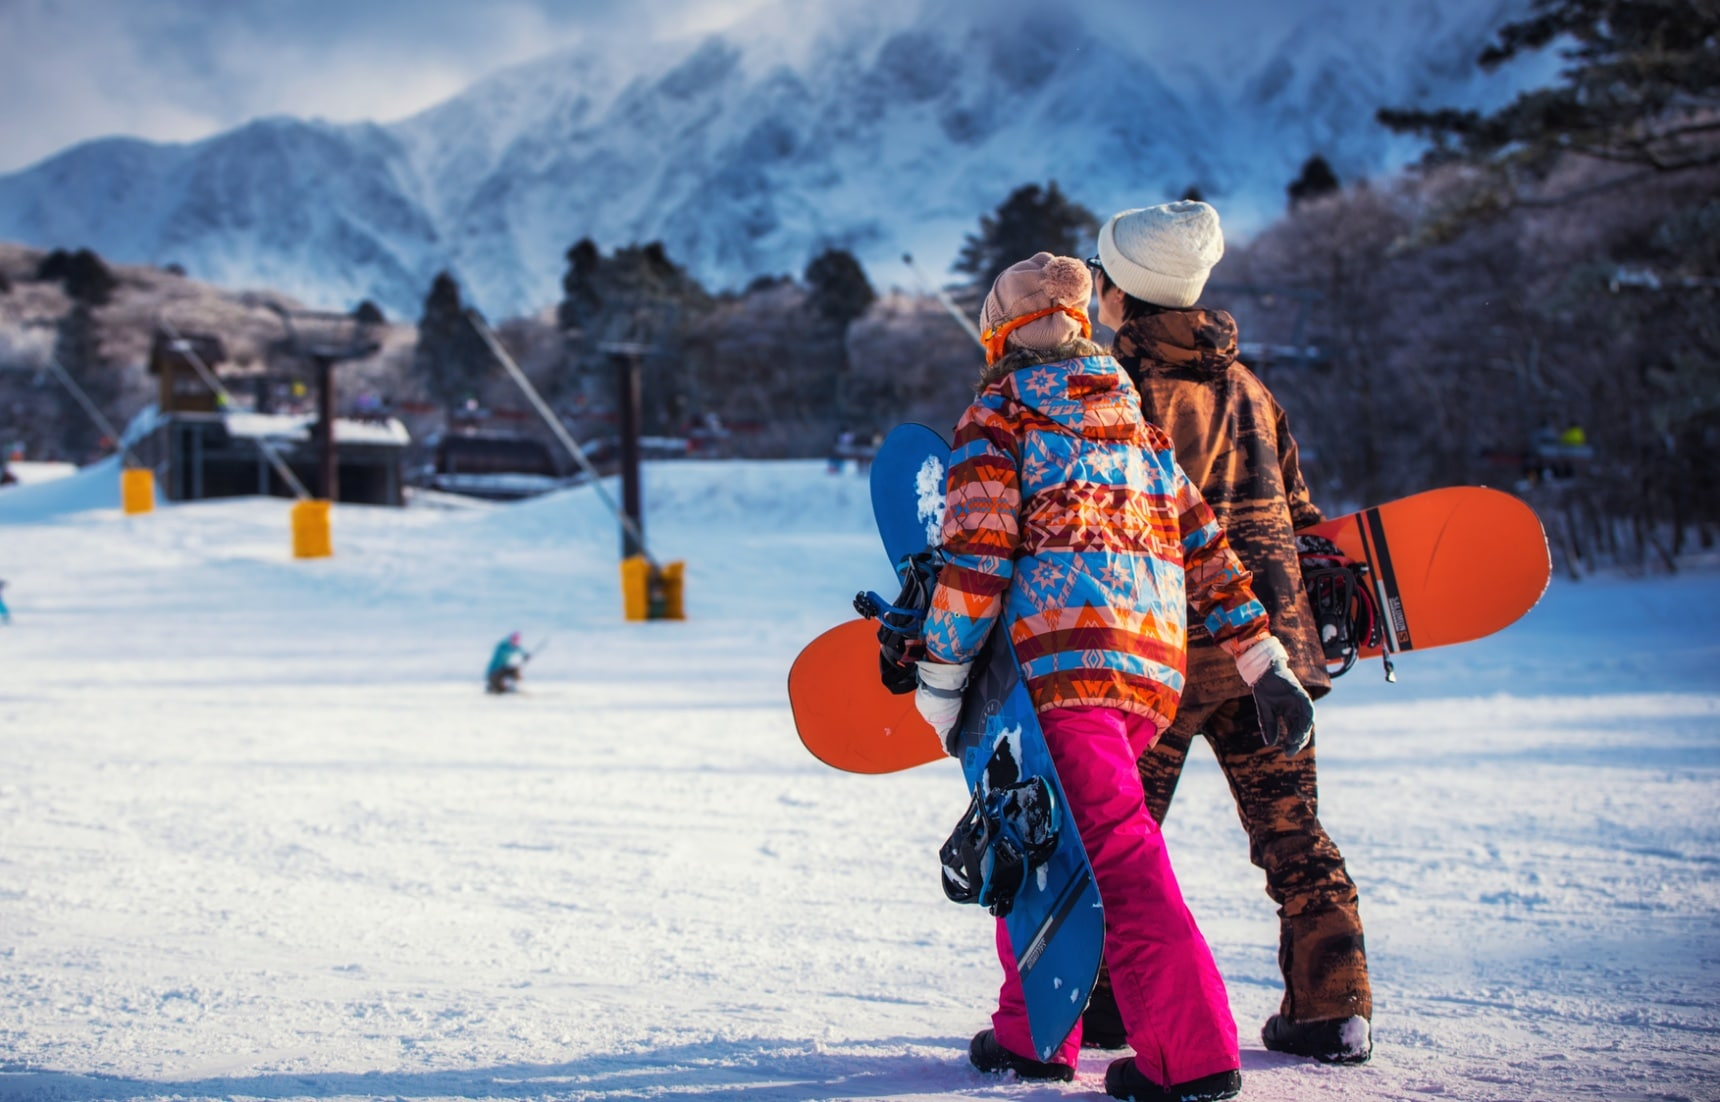 Top 5 Winter Activities in Wintery Gifu